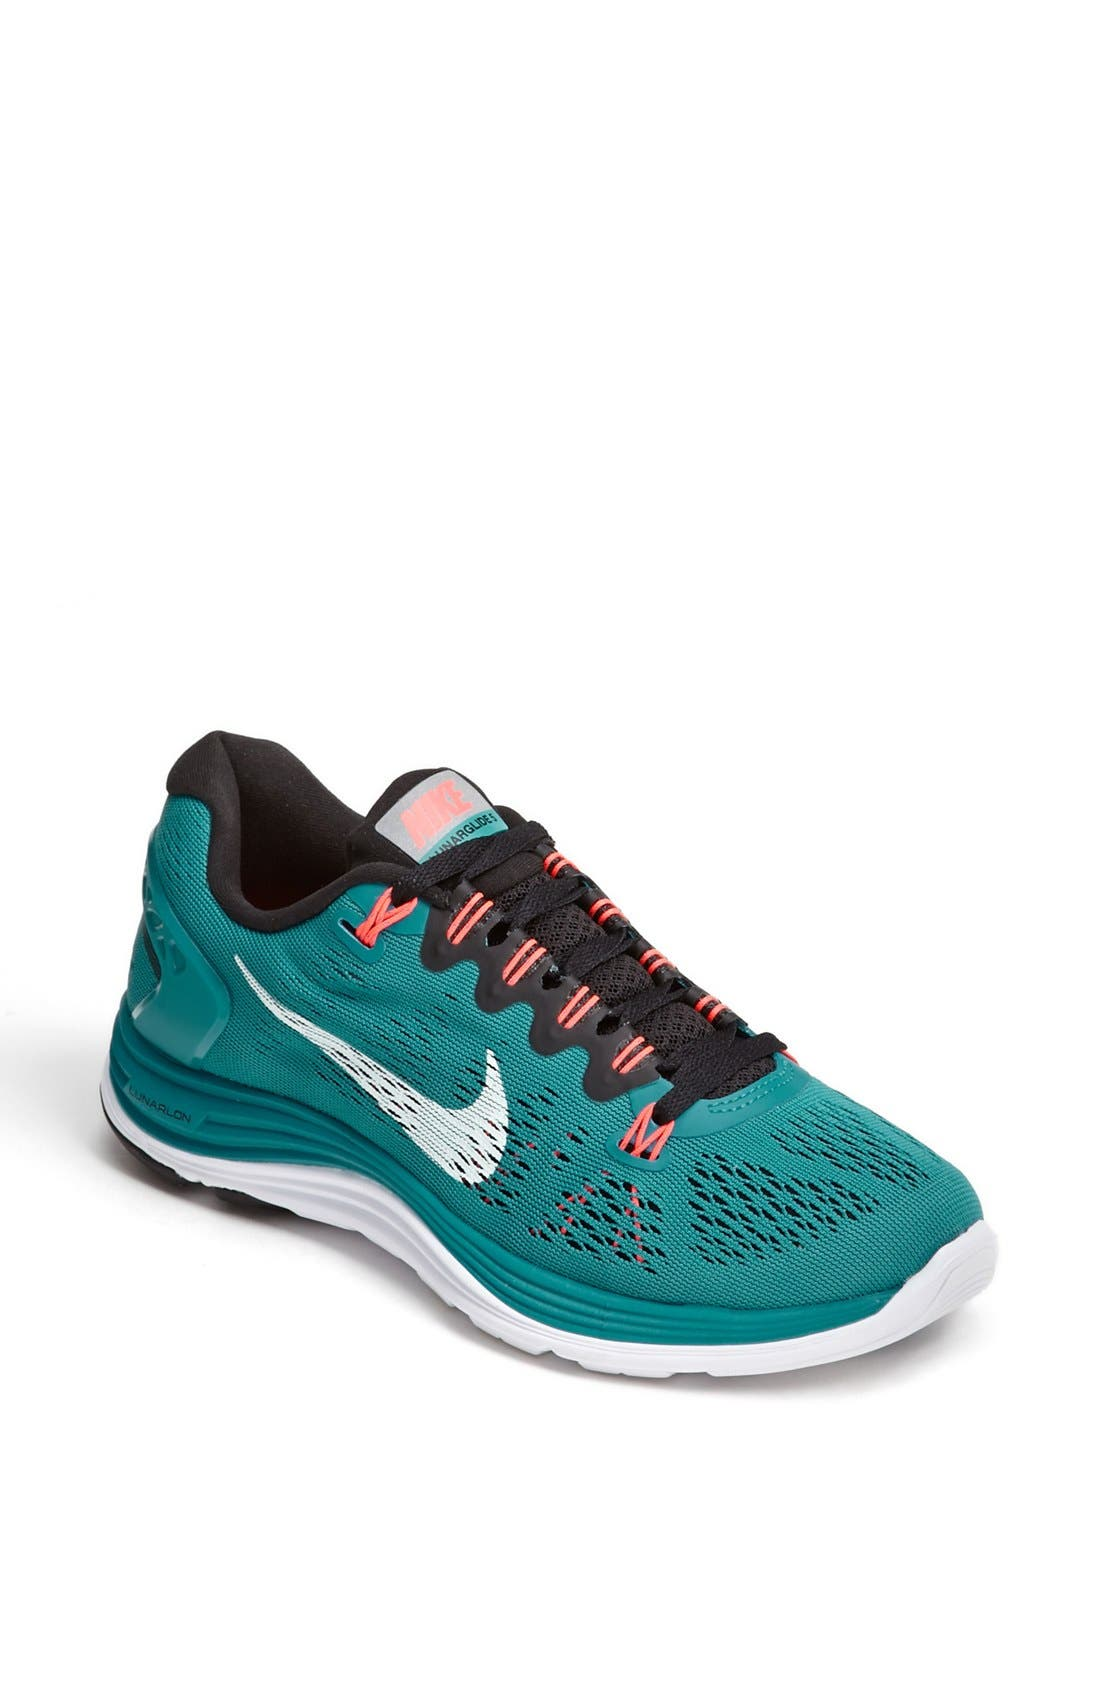 Main Image - Nike 'LunarGlide 5' Running Shoe (Women)